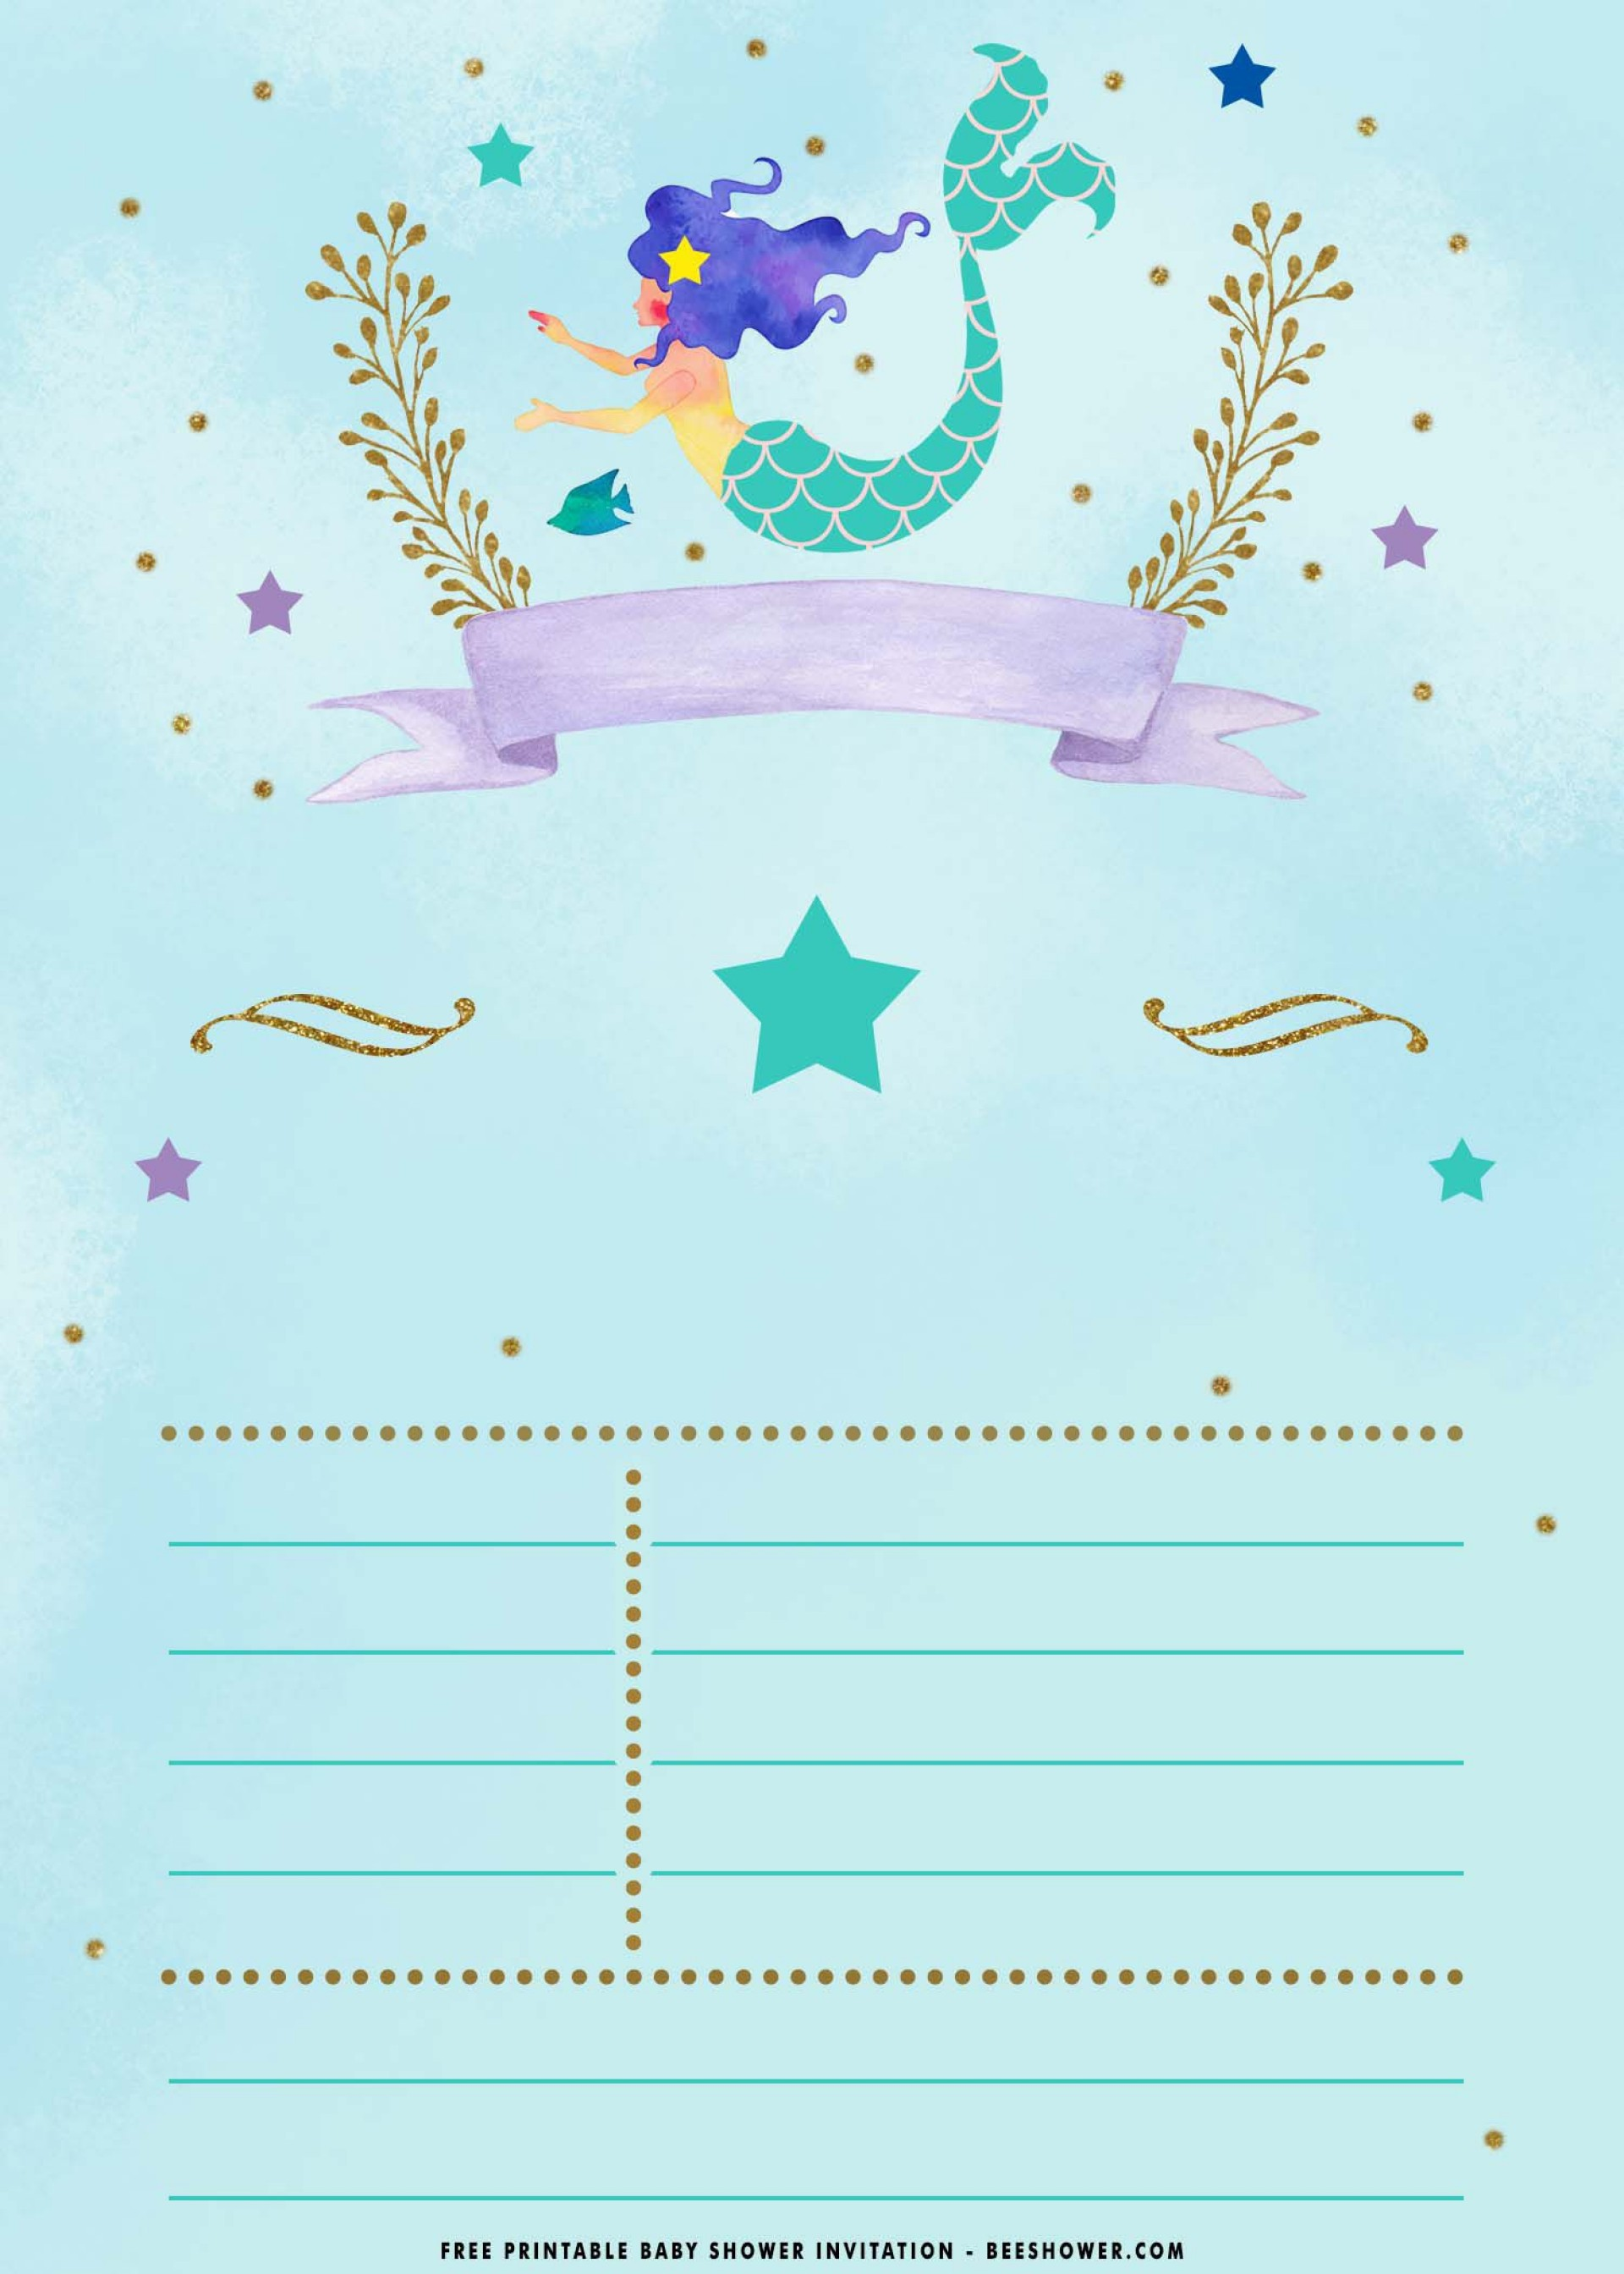 010 Breathtaking Free Mermaid Invitation Template Design  Download Printable Little Birthday Baby Shower1920